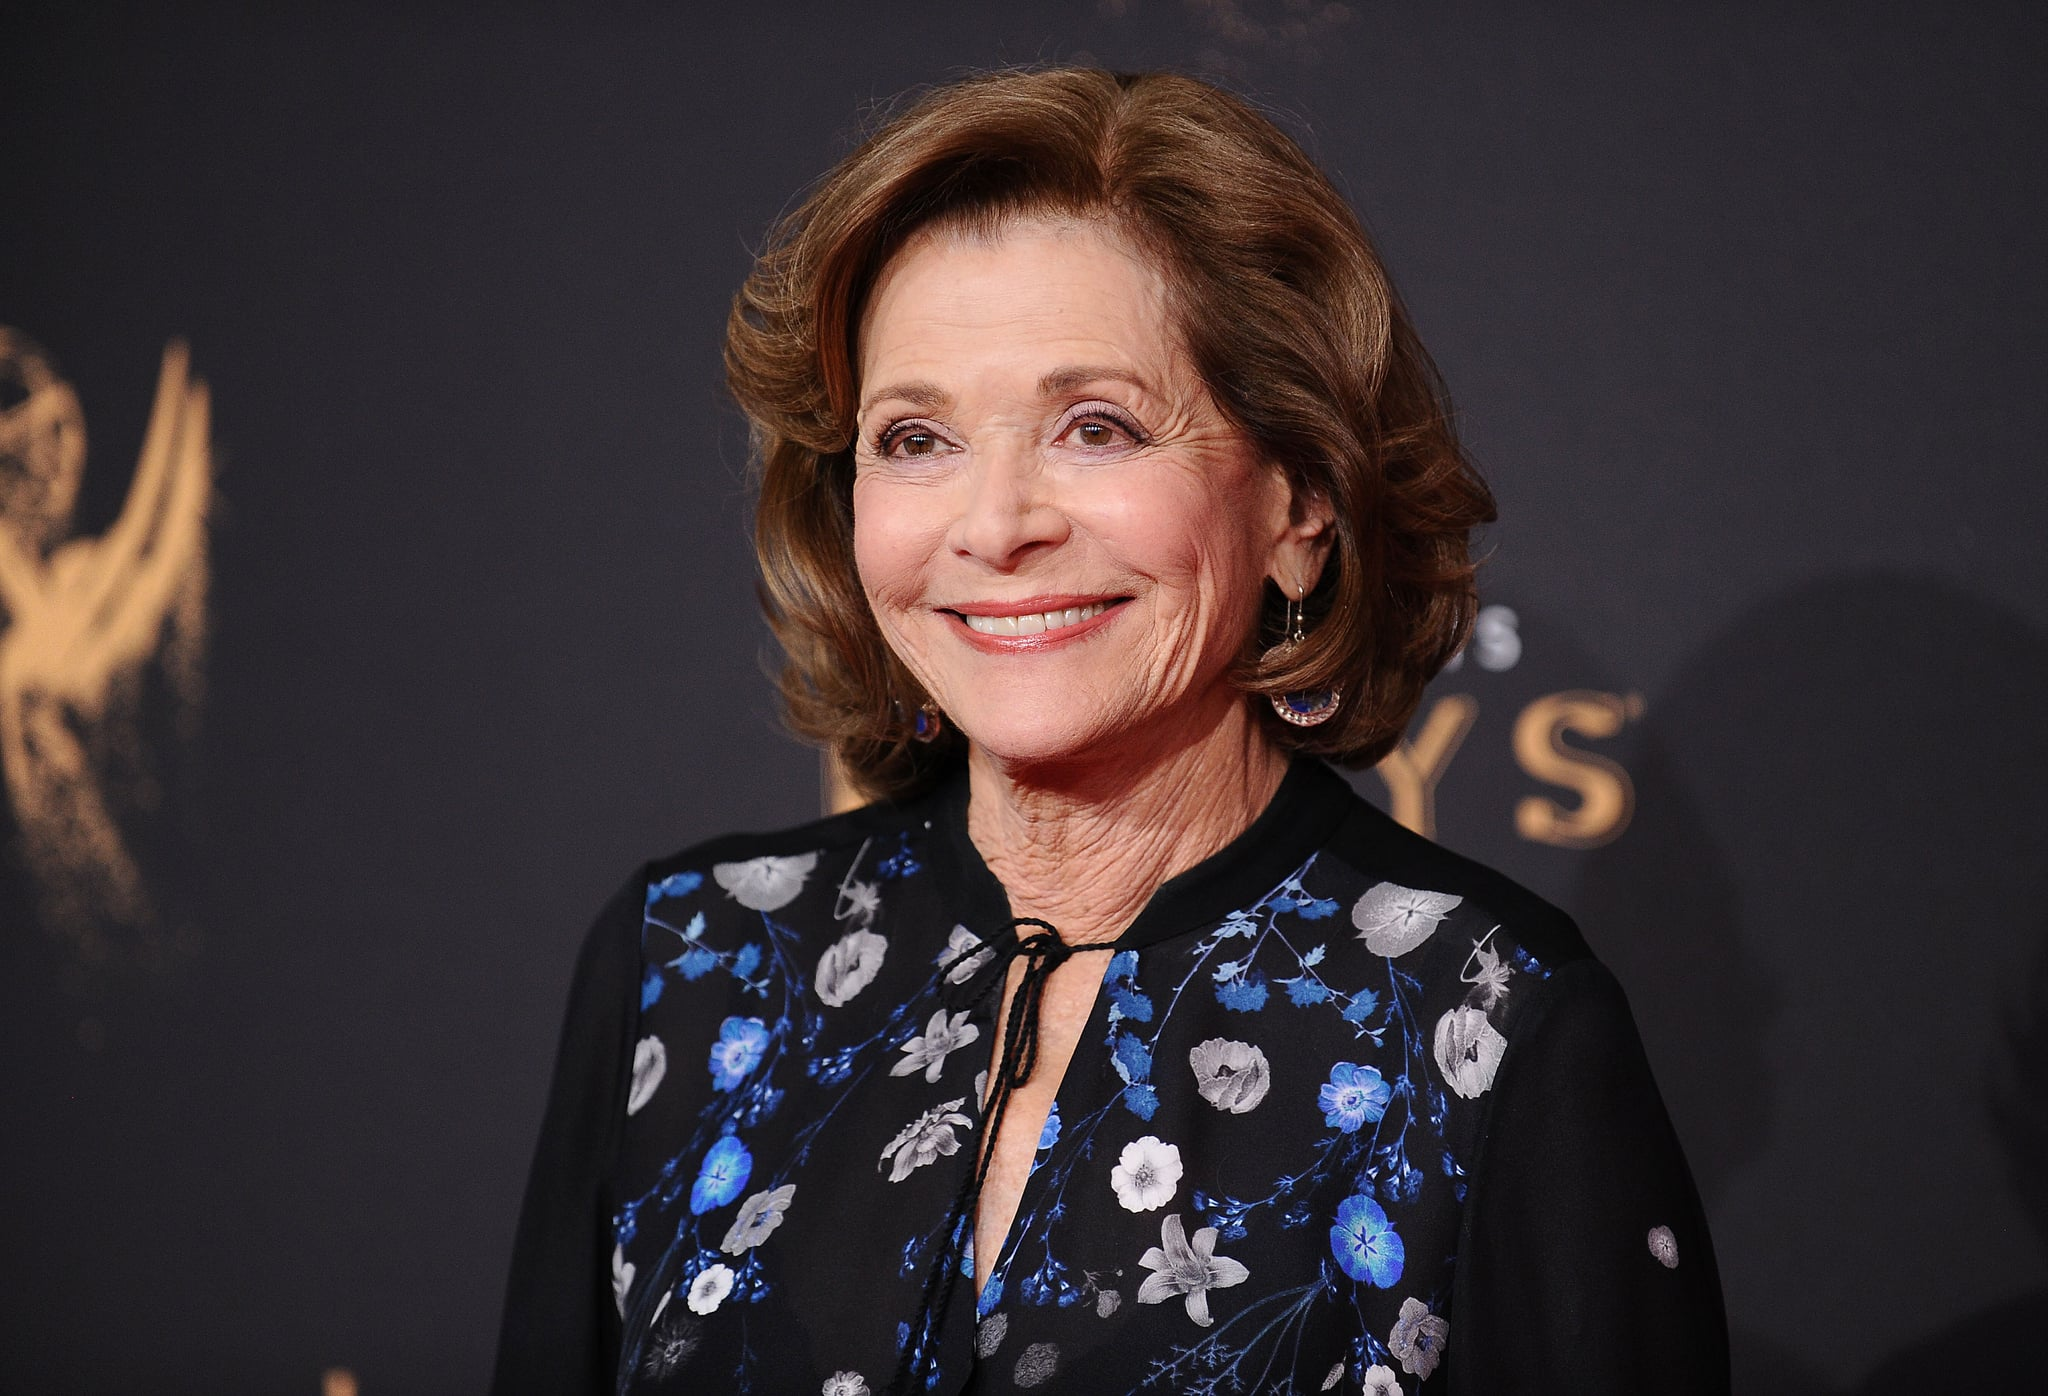 LOS ANGELES, CA - SEPTEMBER 09: Actress Jessica Walter attends the 2017 Creative Arts Emmy Awards at Microsoft Theatre on September 9, 2017 in Los Angeles, California.  (Photo by Jason LaVeris/FilmMagic)